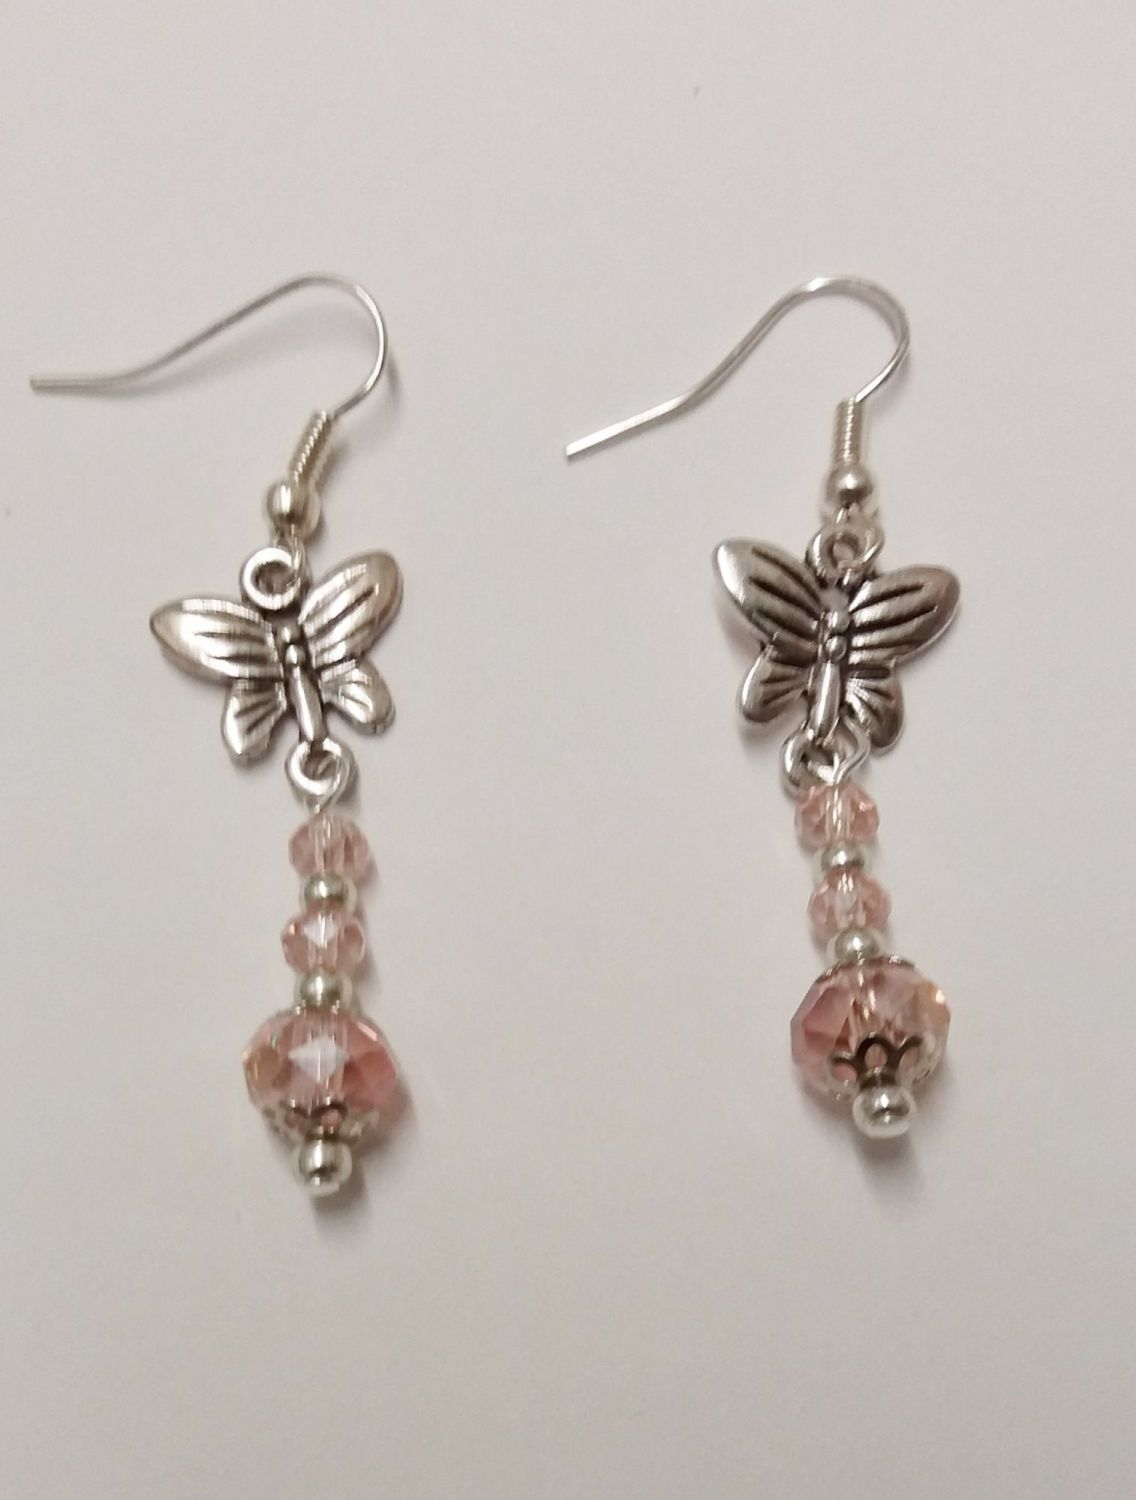 Gift idea. Birthday gift. Jewelry. Silver Butterfly Earrings.  Elegant earrings with pale pink crystals and silver plated elements